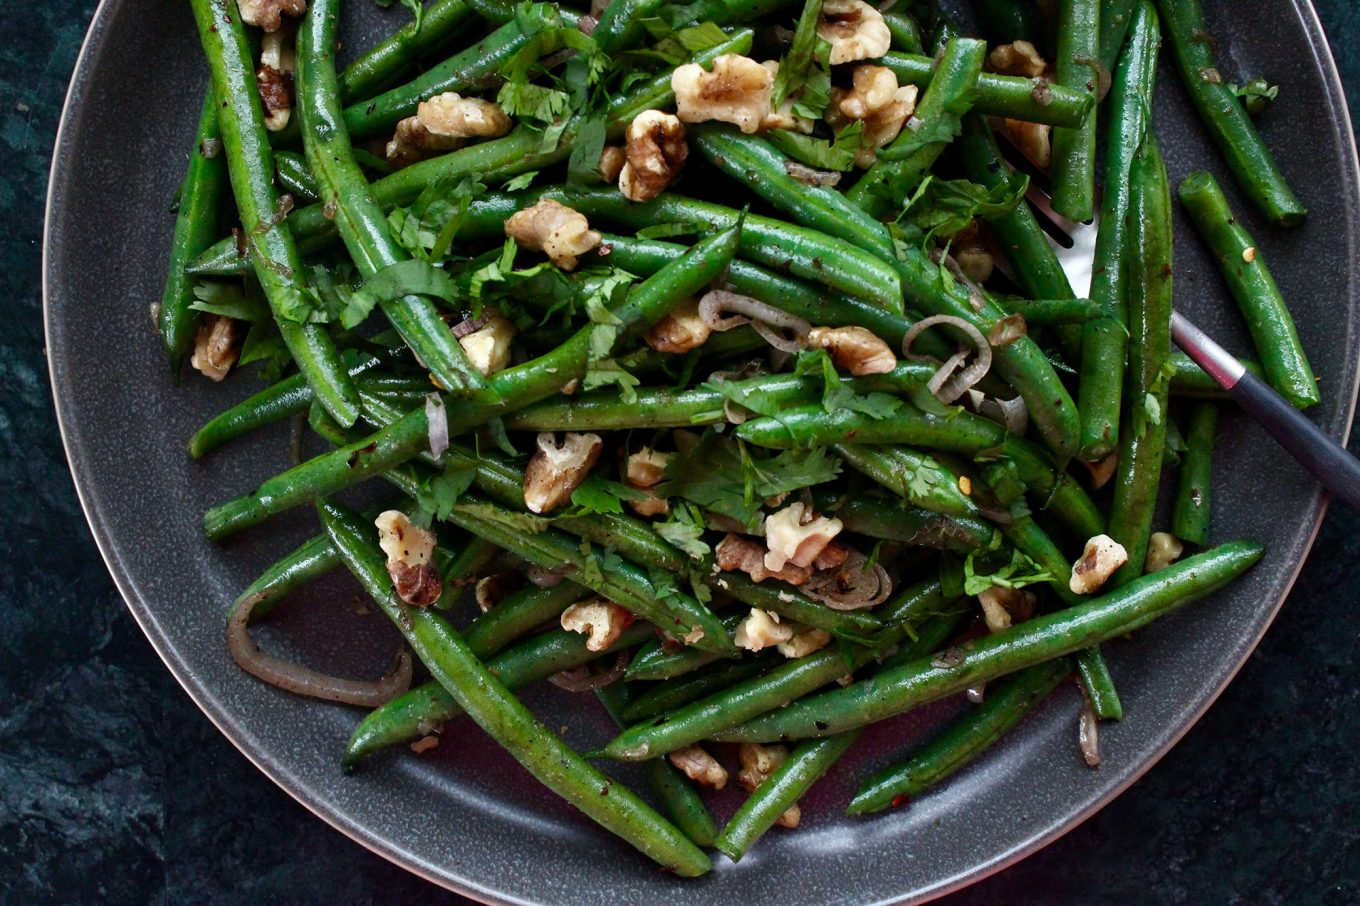 Green Beans with crispy walnuts closeup